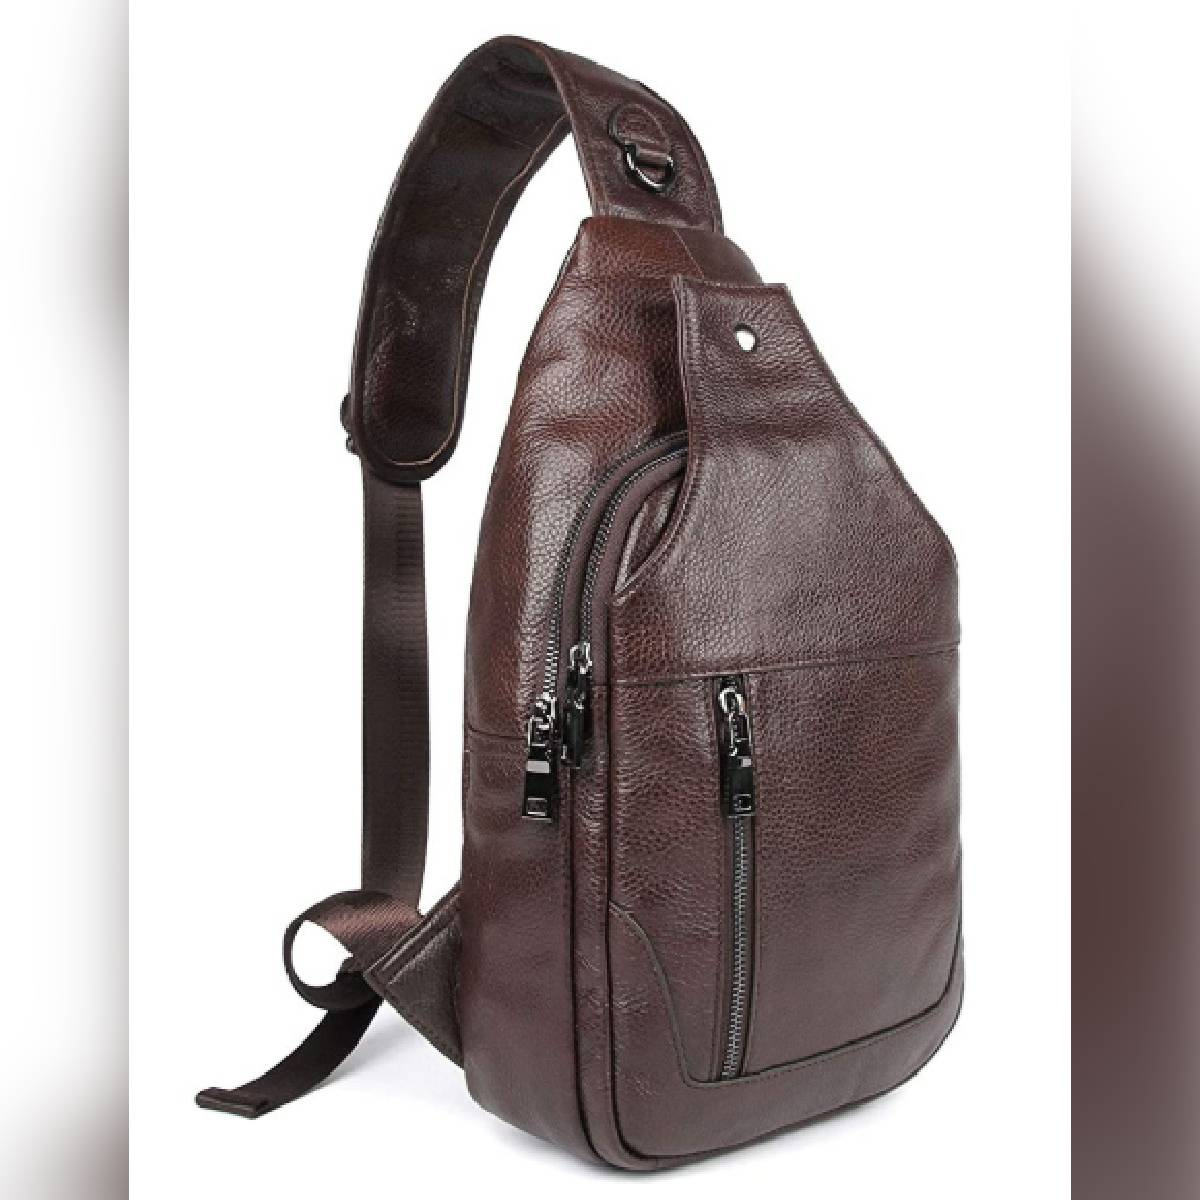 Pu Leather cross body  Bag for men anti theft casual travel bag Shoulder Backpack Sling Chest bag for Bicycle Sport Hiking Travel Camping Bookbag Men Women